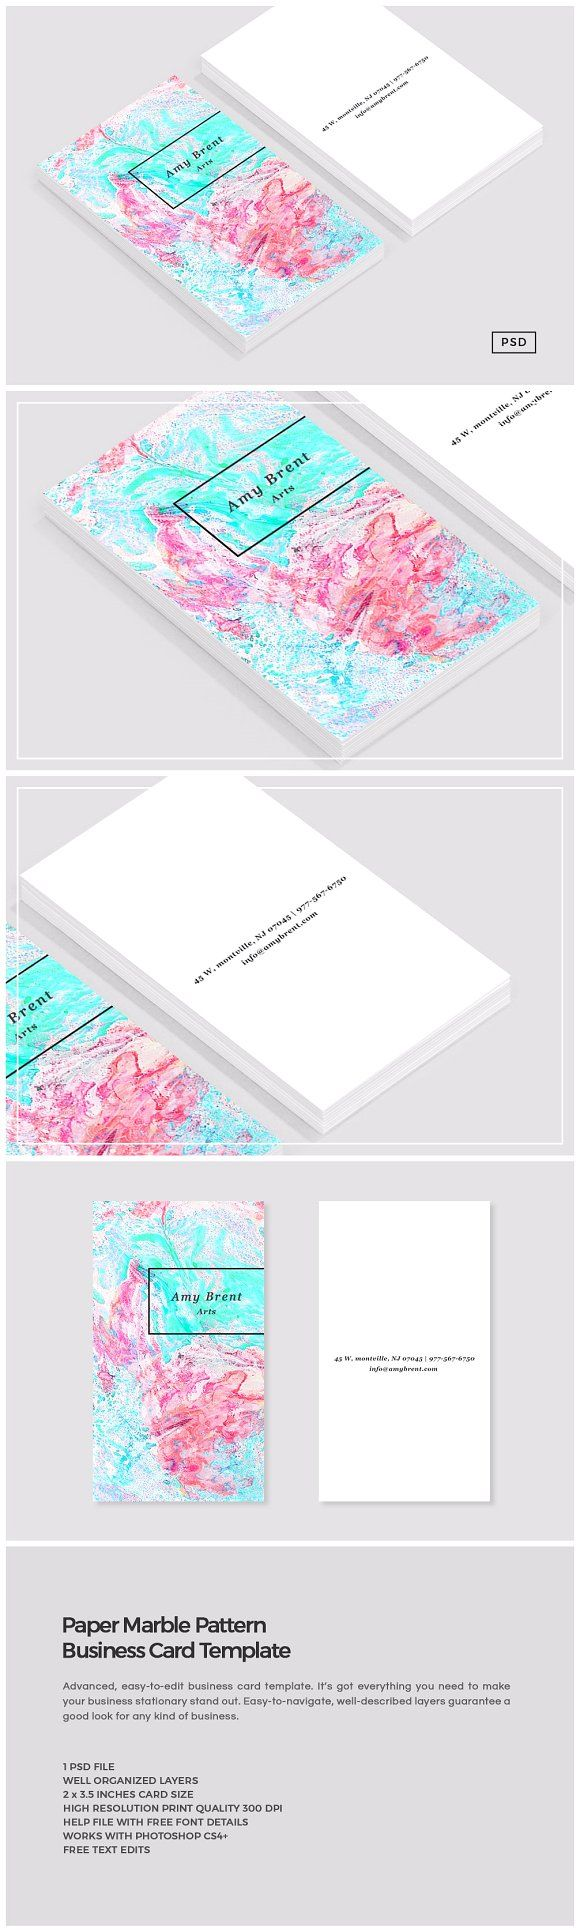 78 best business card designs images on pinterest card templates paper marble pattern business card by the design label on creativemarket magicingreecefo Images